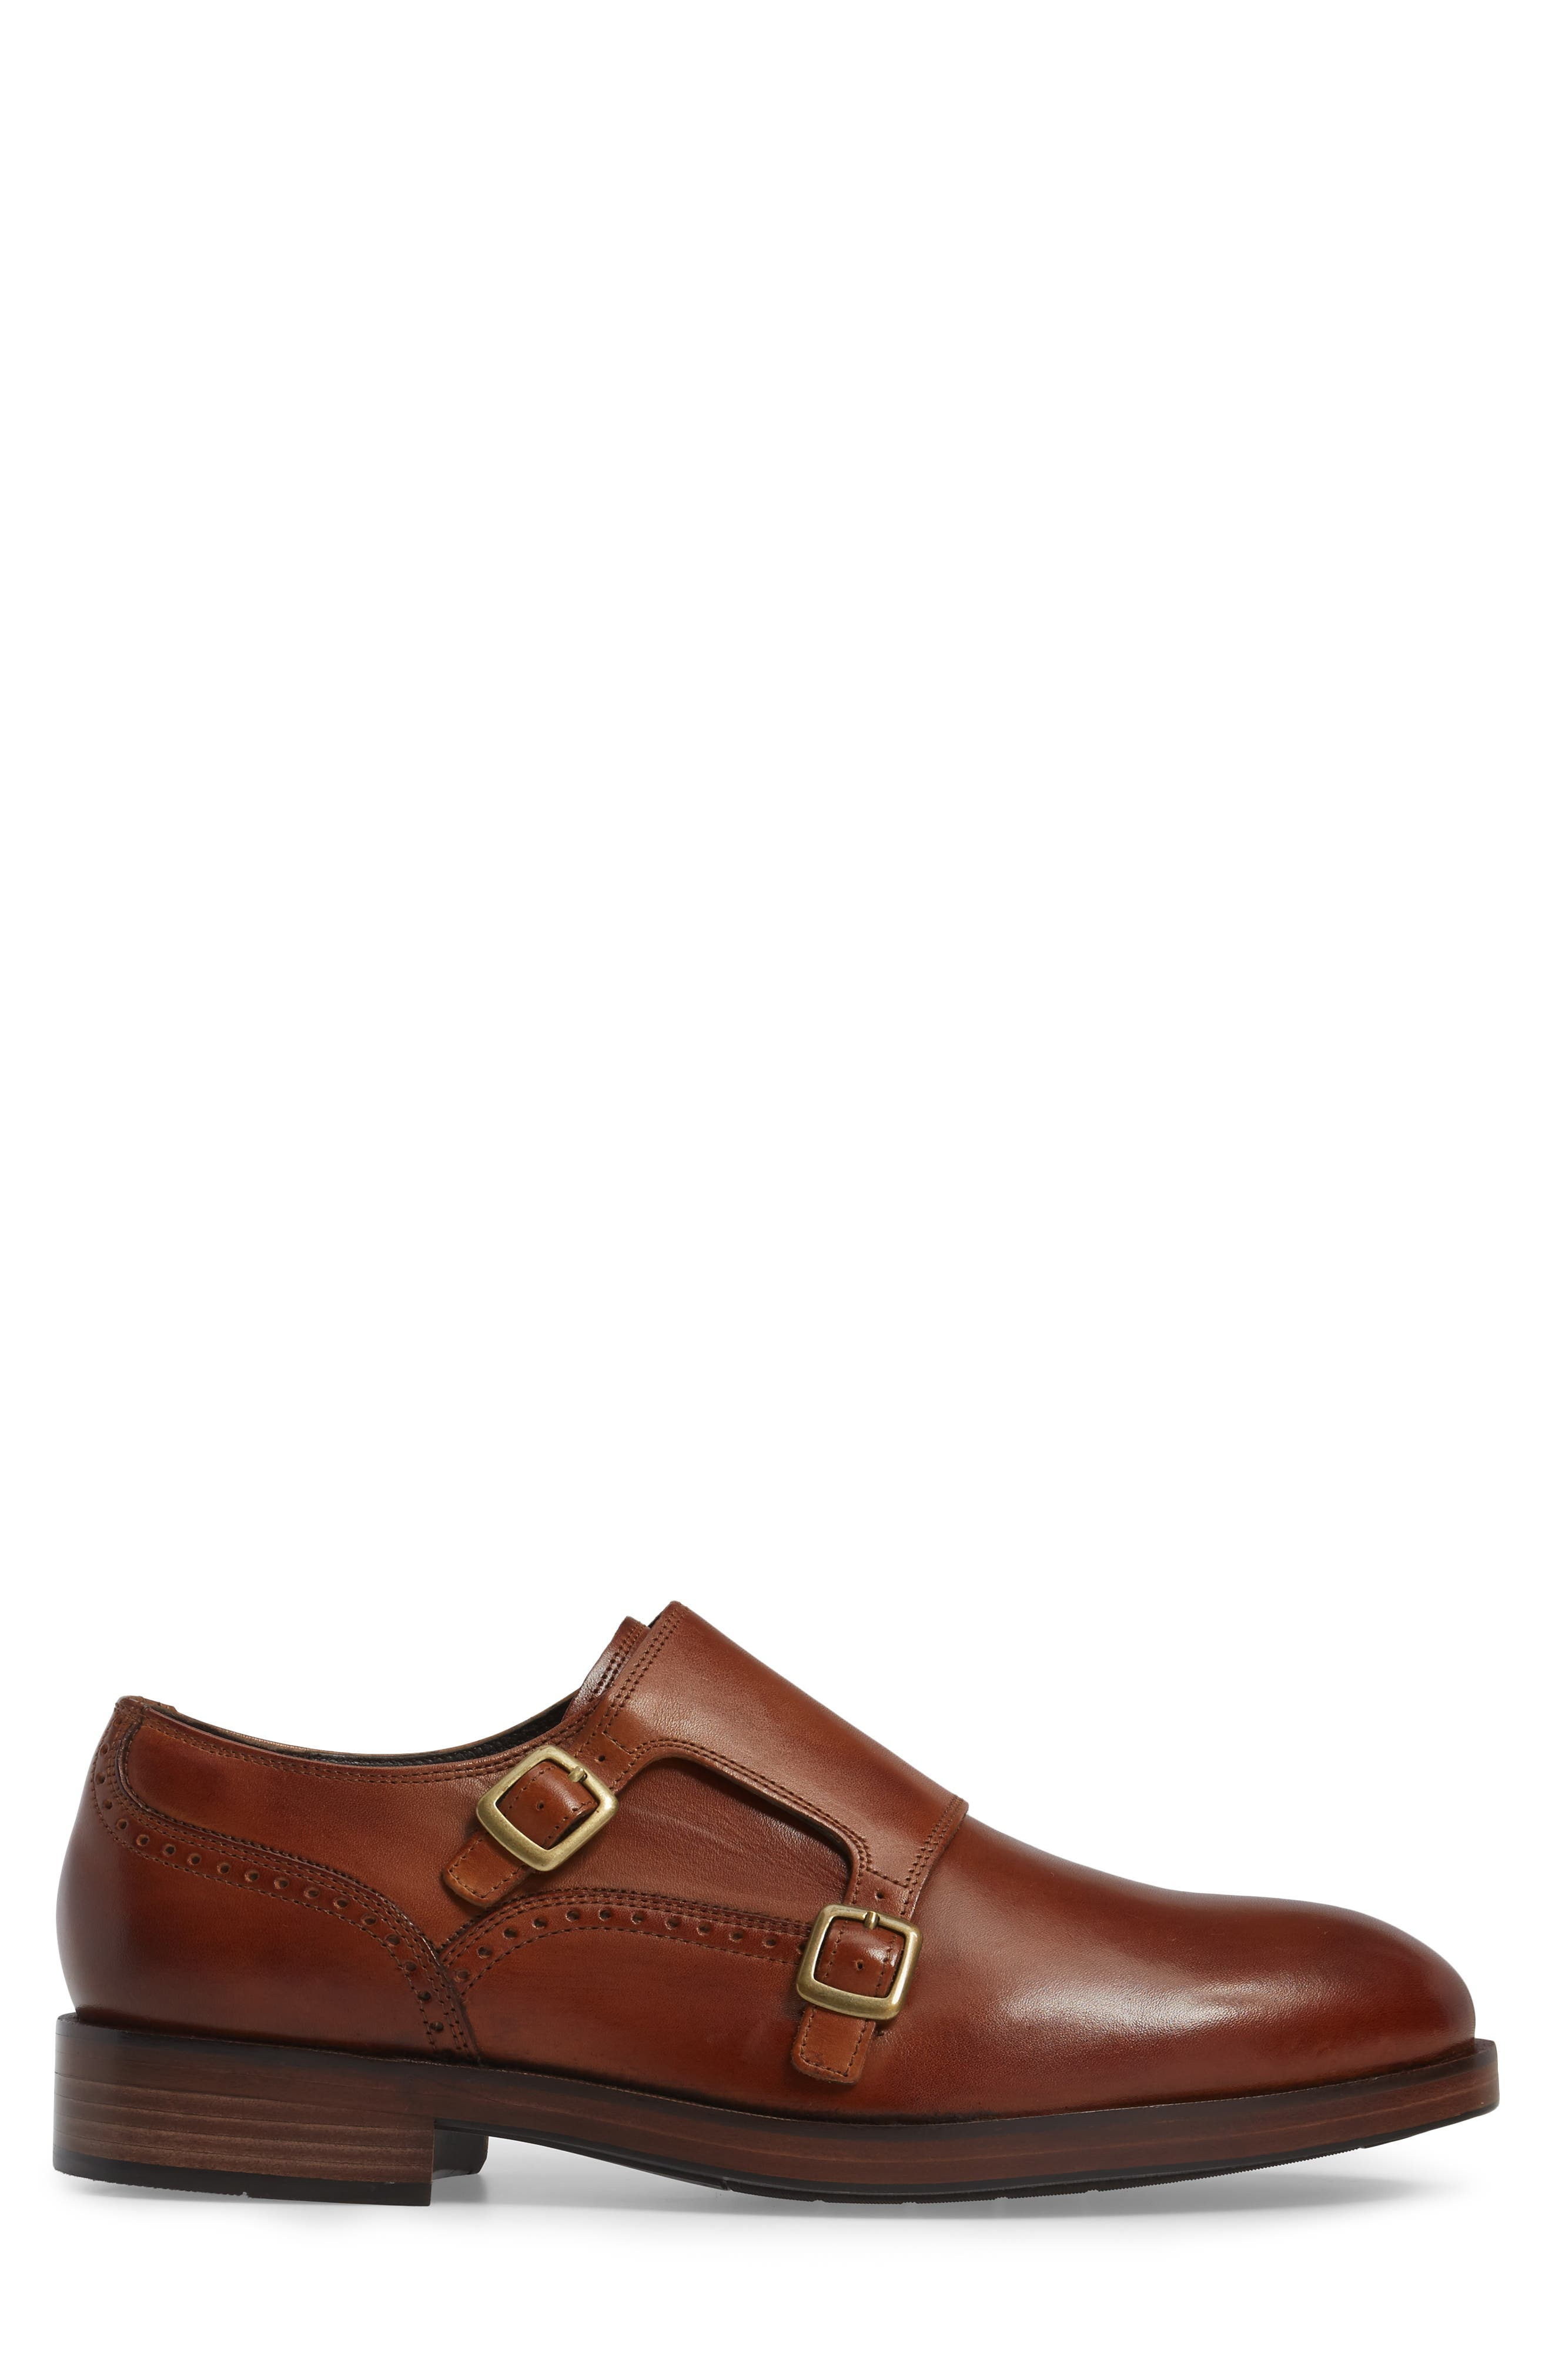 'Harrison' Double Monk Strap Shoe,                             Alternate thumbnail 4, color,                             BRITISH TAN LEATHER